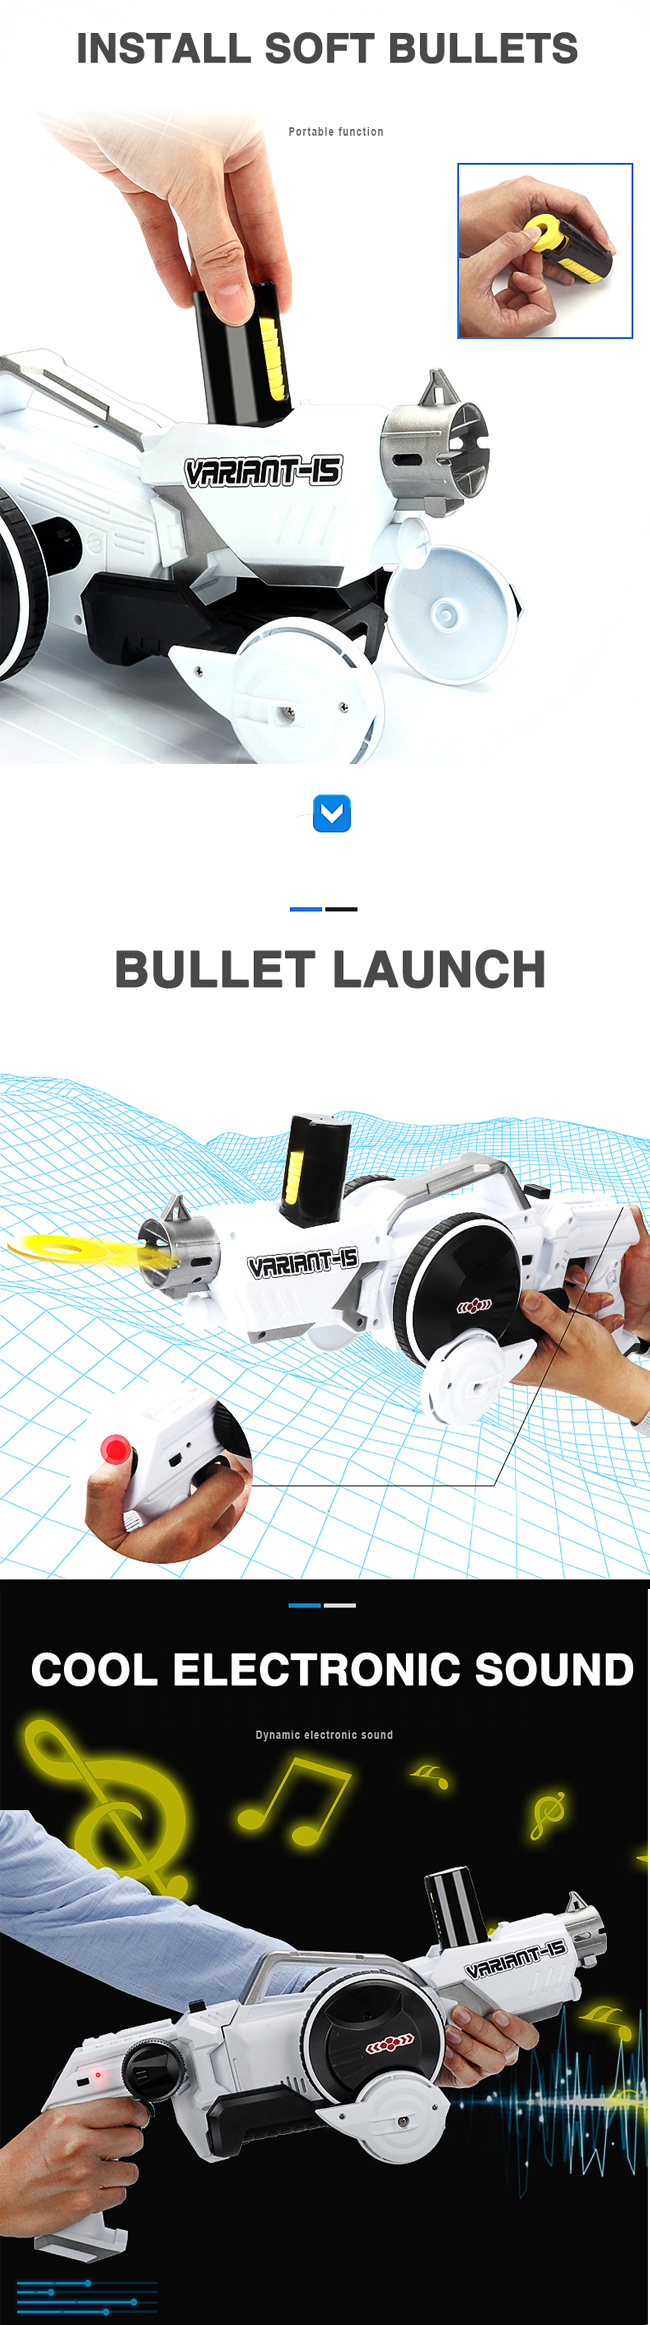 Wholesale 2 IN 1 kids deformation plastic super power electric airsoft air soft bullet toy gun